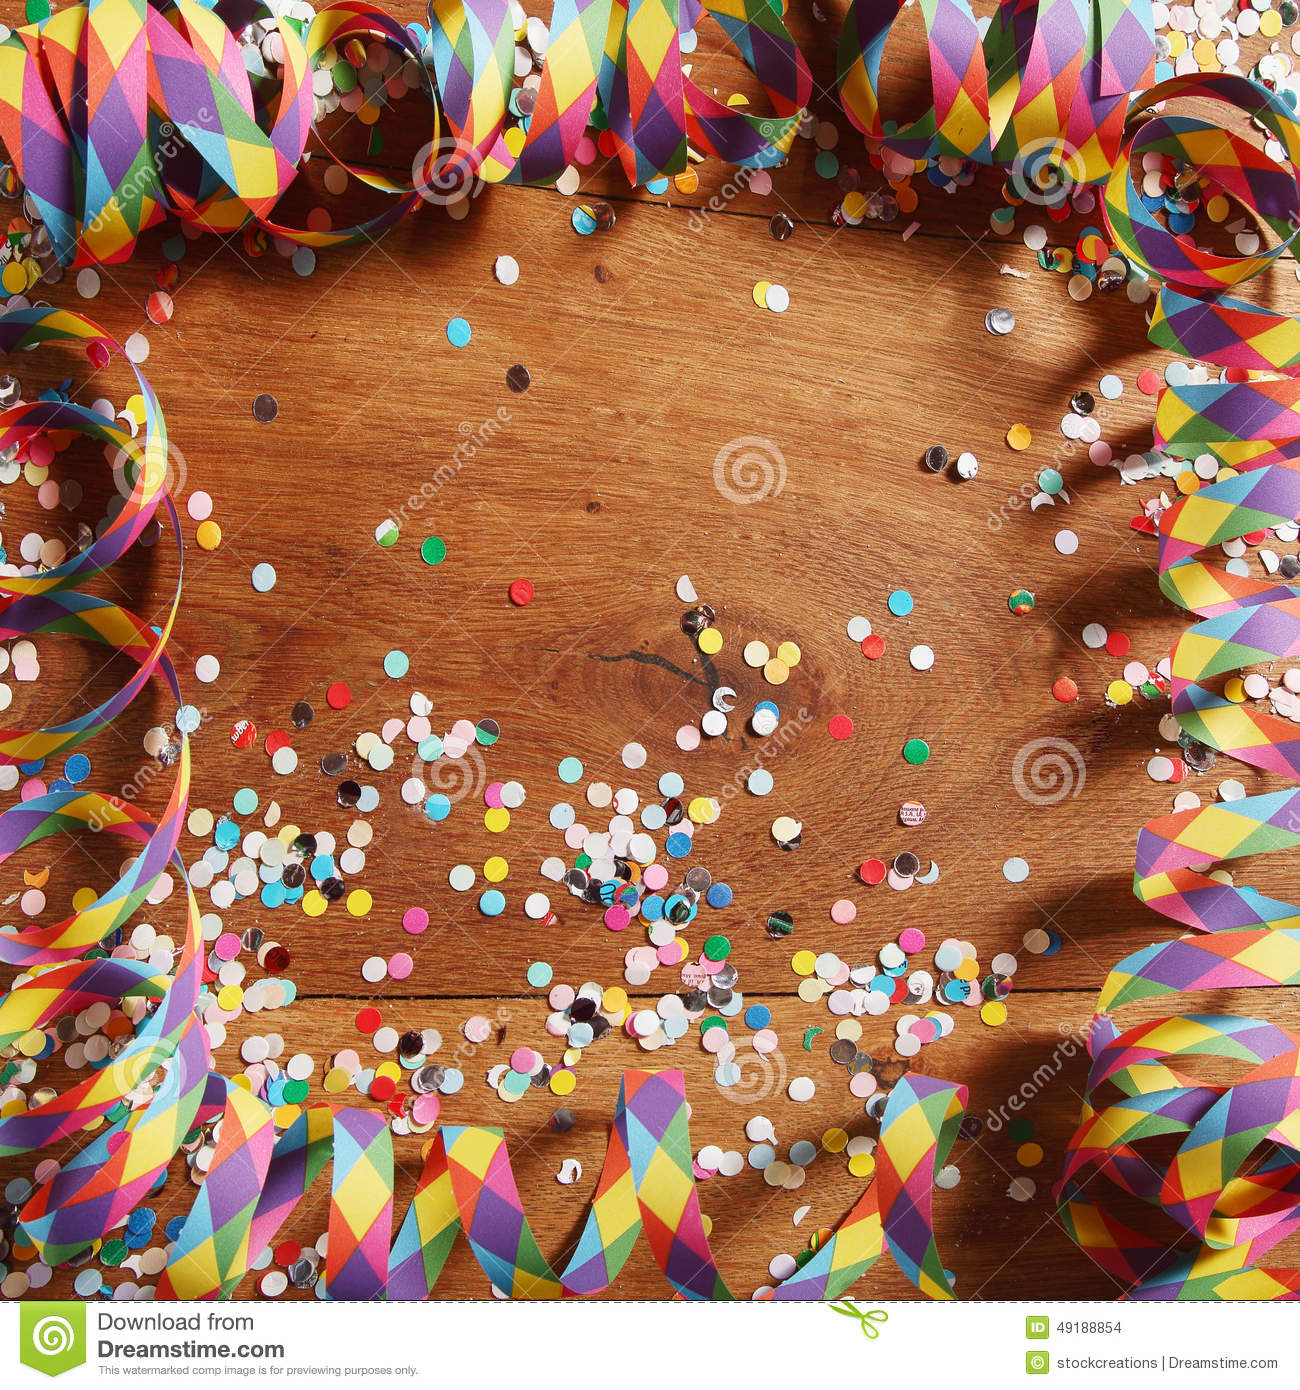 Colorful Carnival Frame Of Streamers And Confetti Stock